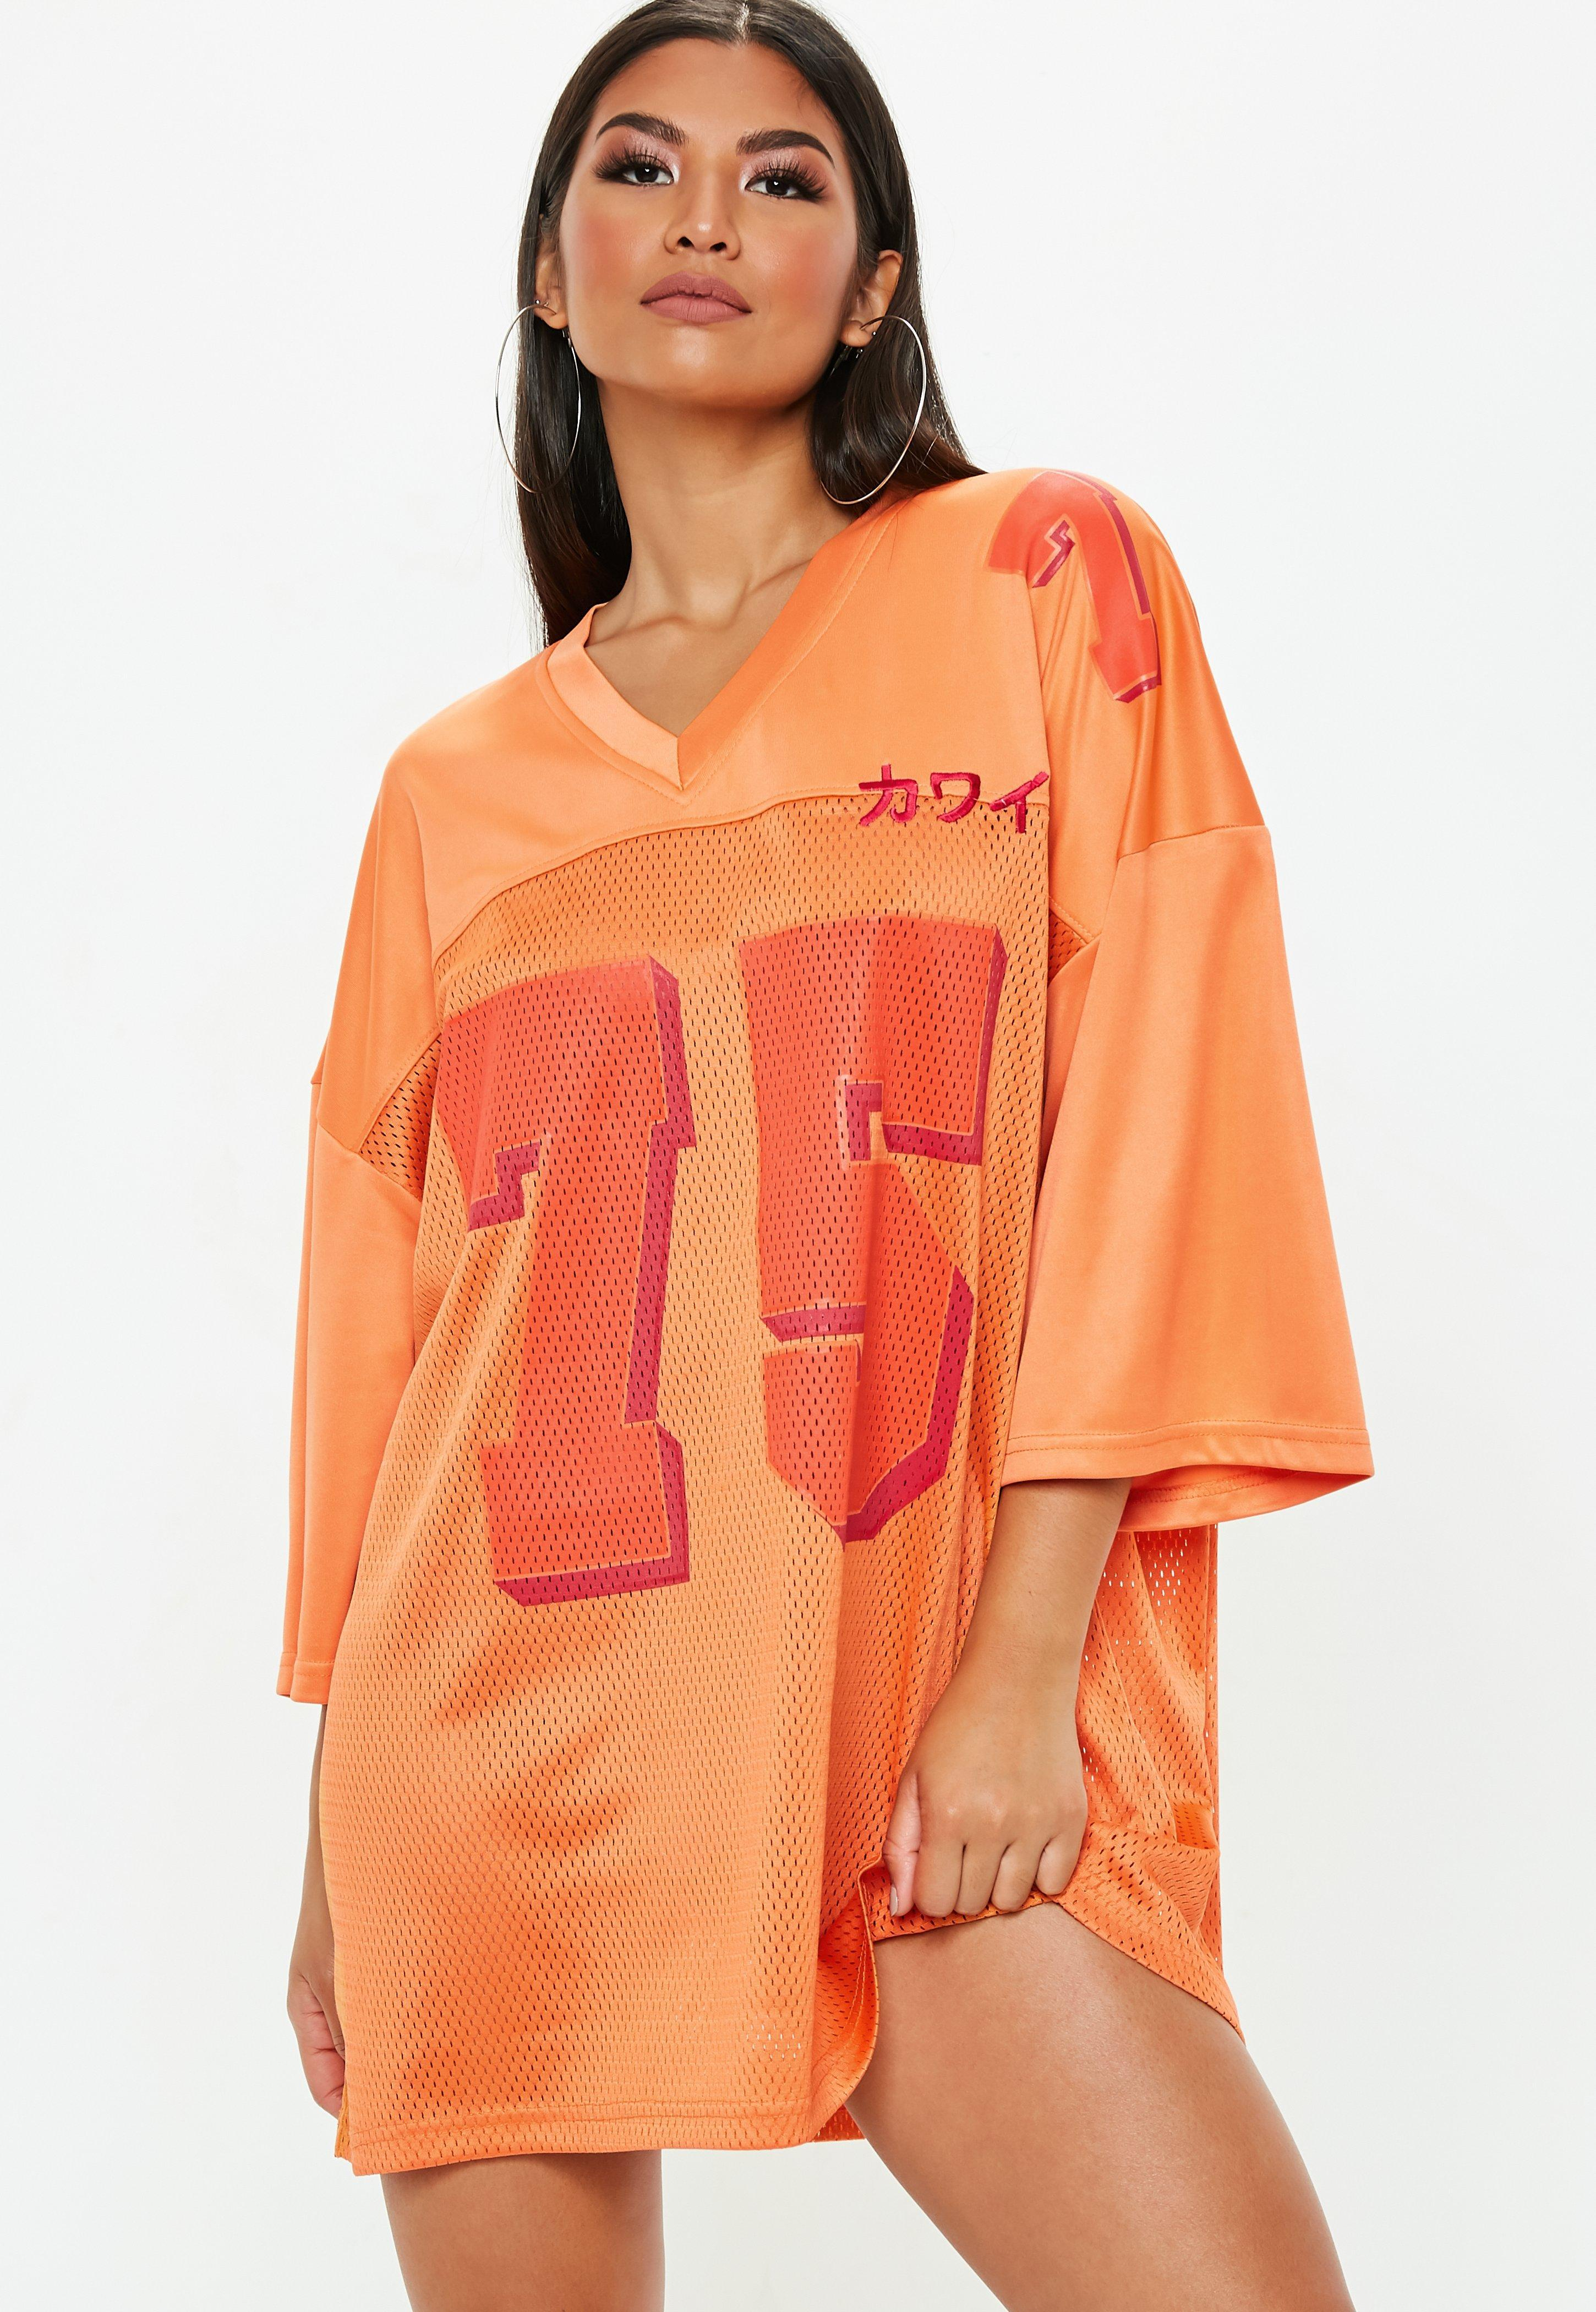 ddcadd587 Lyst - Missguided Orange Oversized Football Jersey Dress in Orange